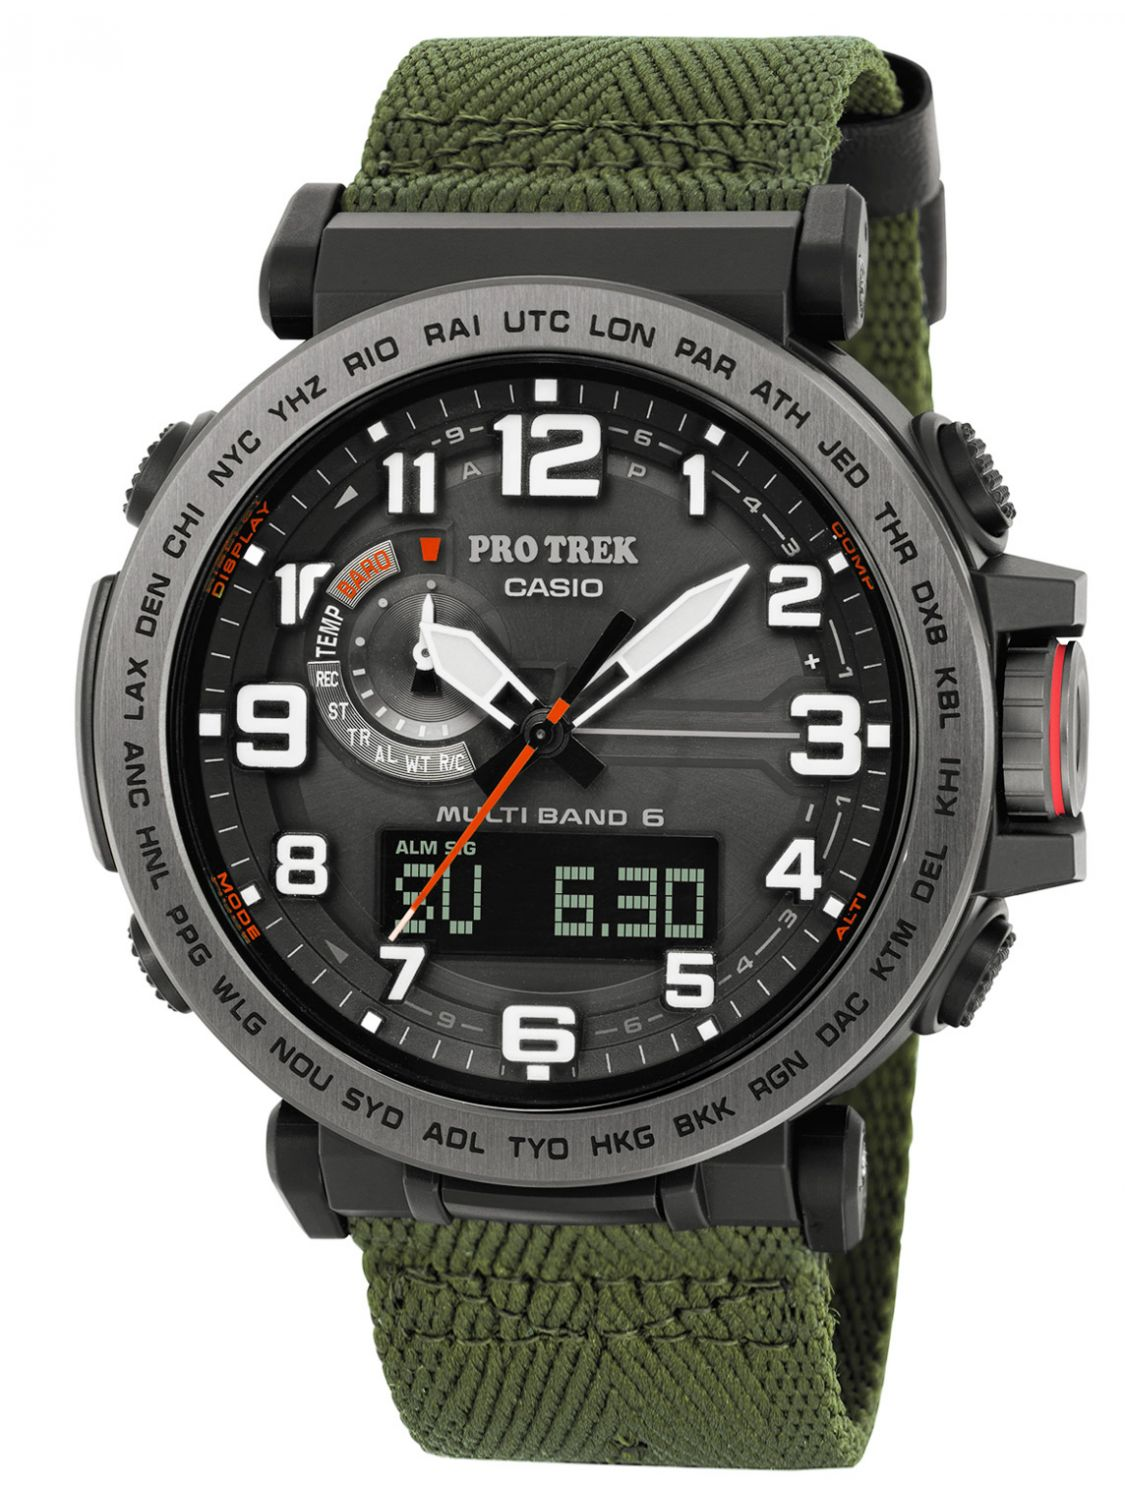 Digitale Uhren Casio Pro Trek Outdoor Solar Radio Watch Monte Tamaro Prw